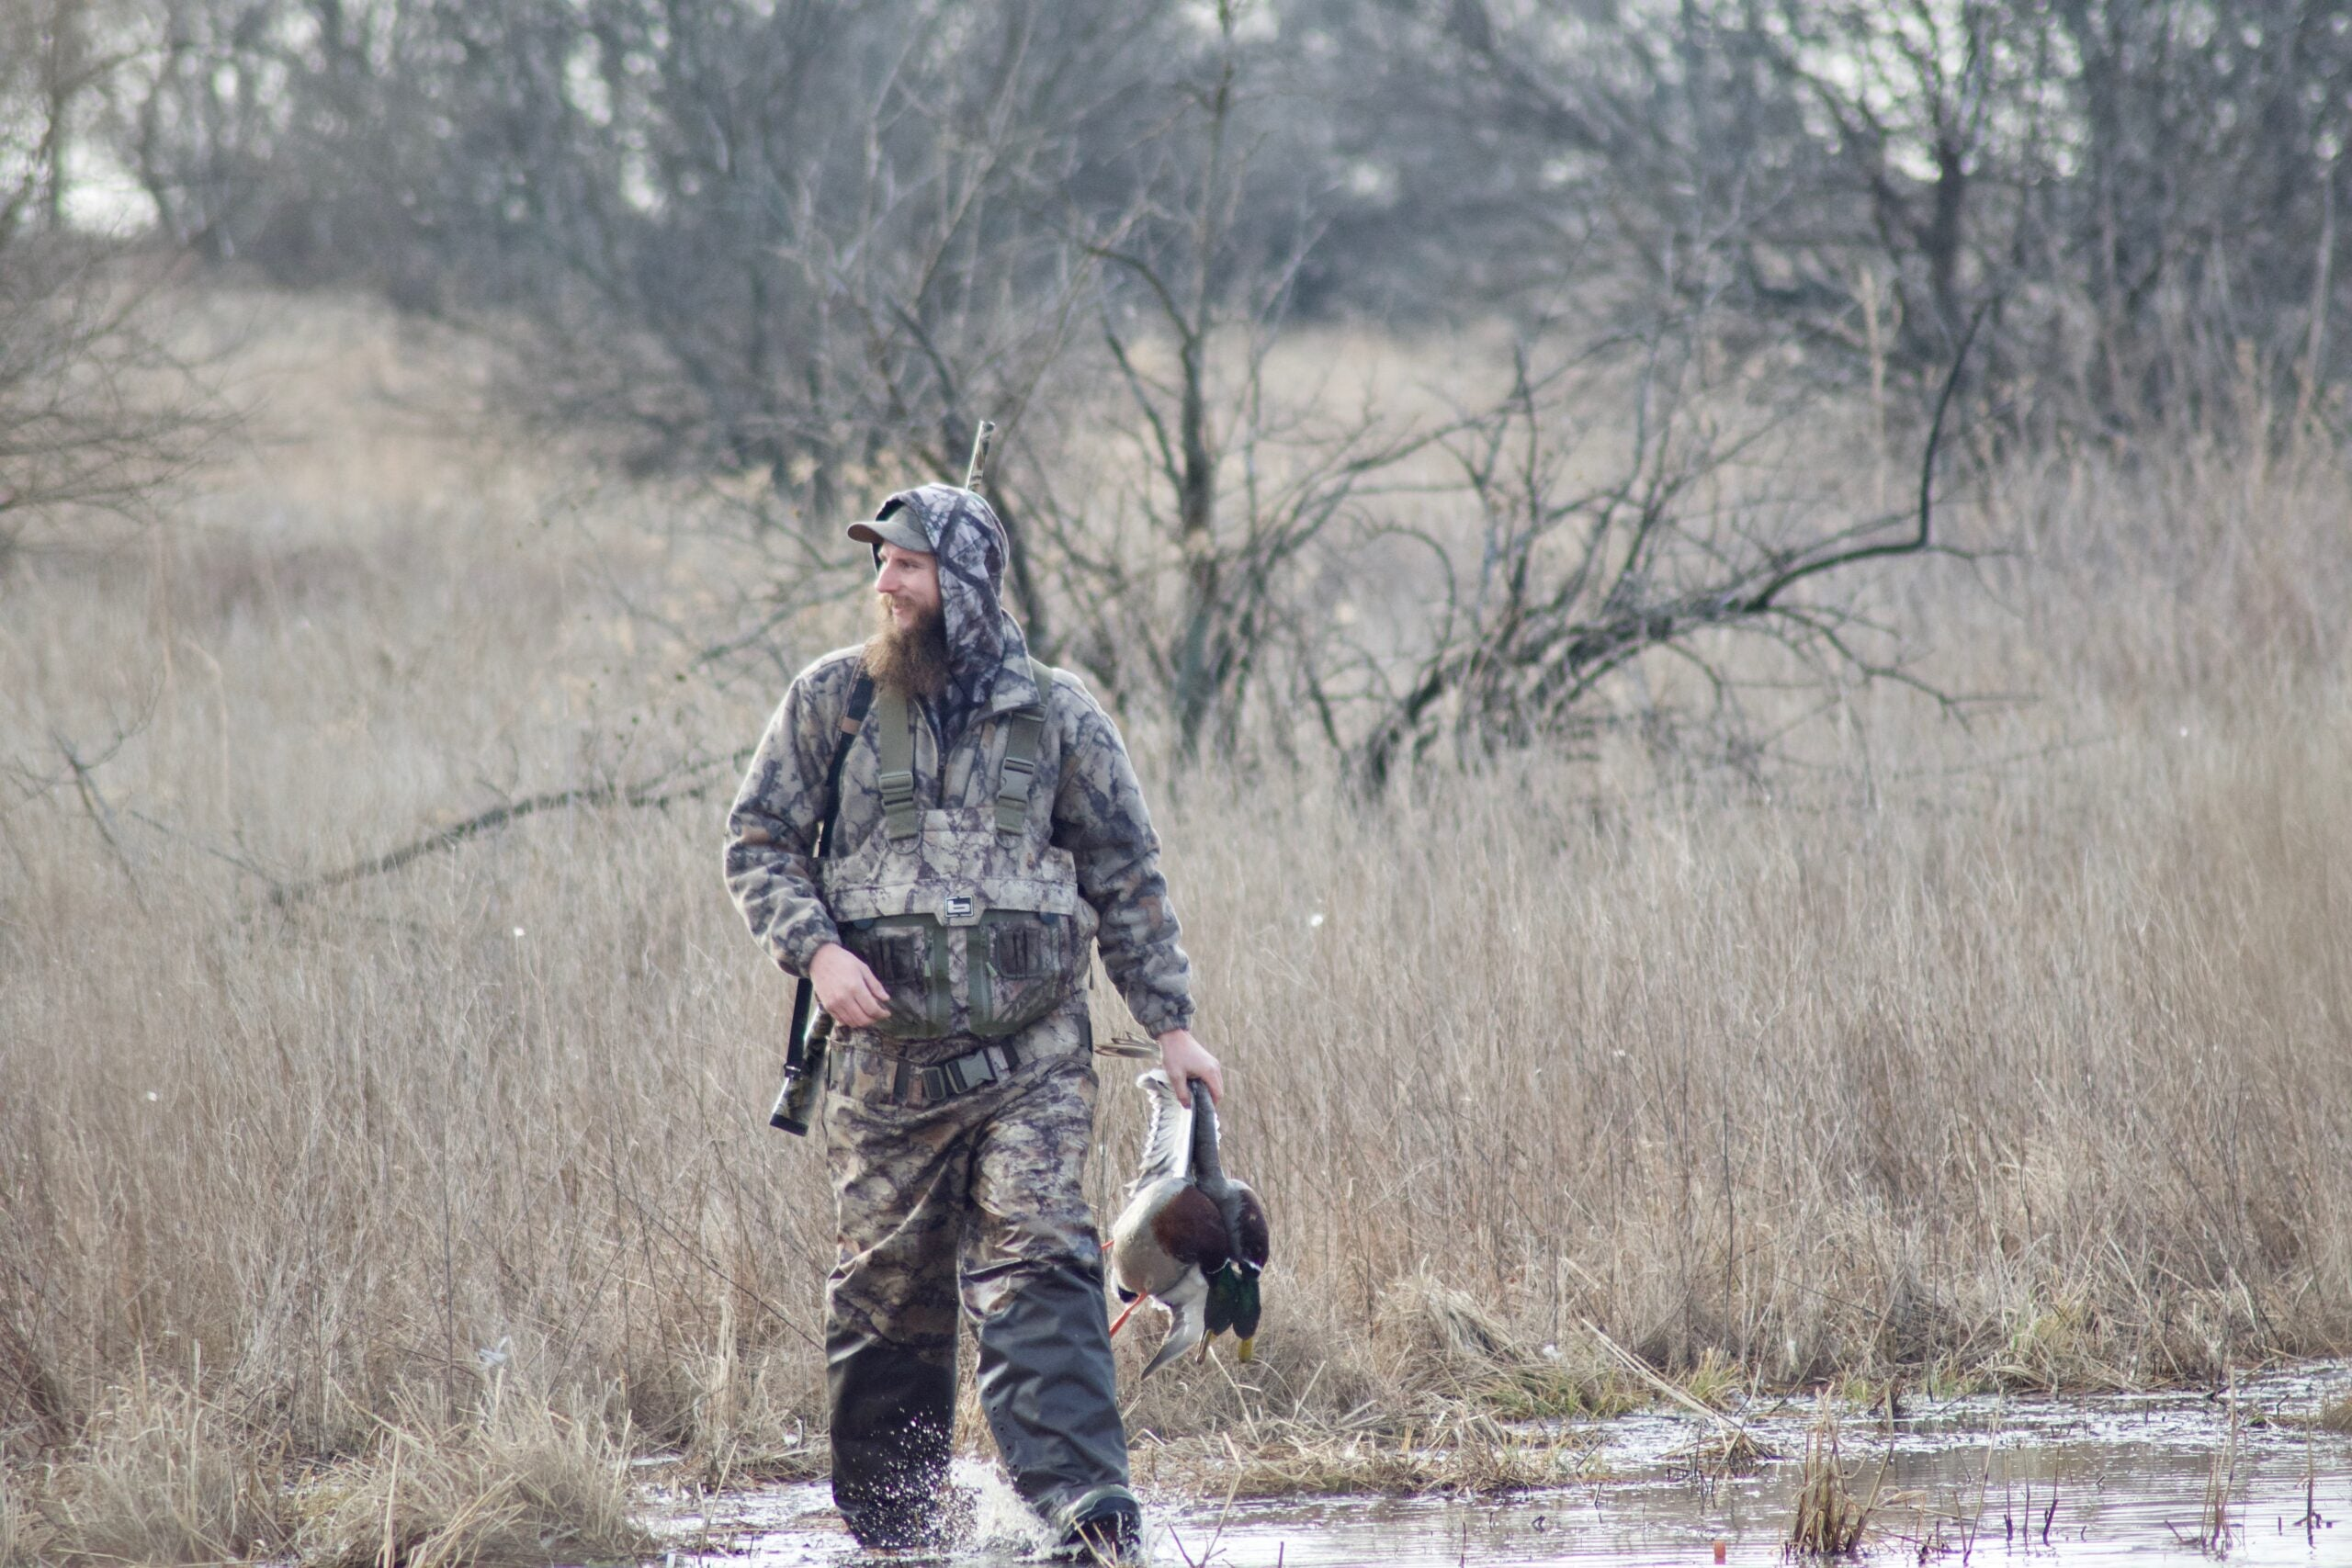 There's only one species of mallard no matter what continent you shoot one on.